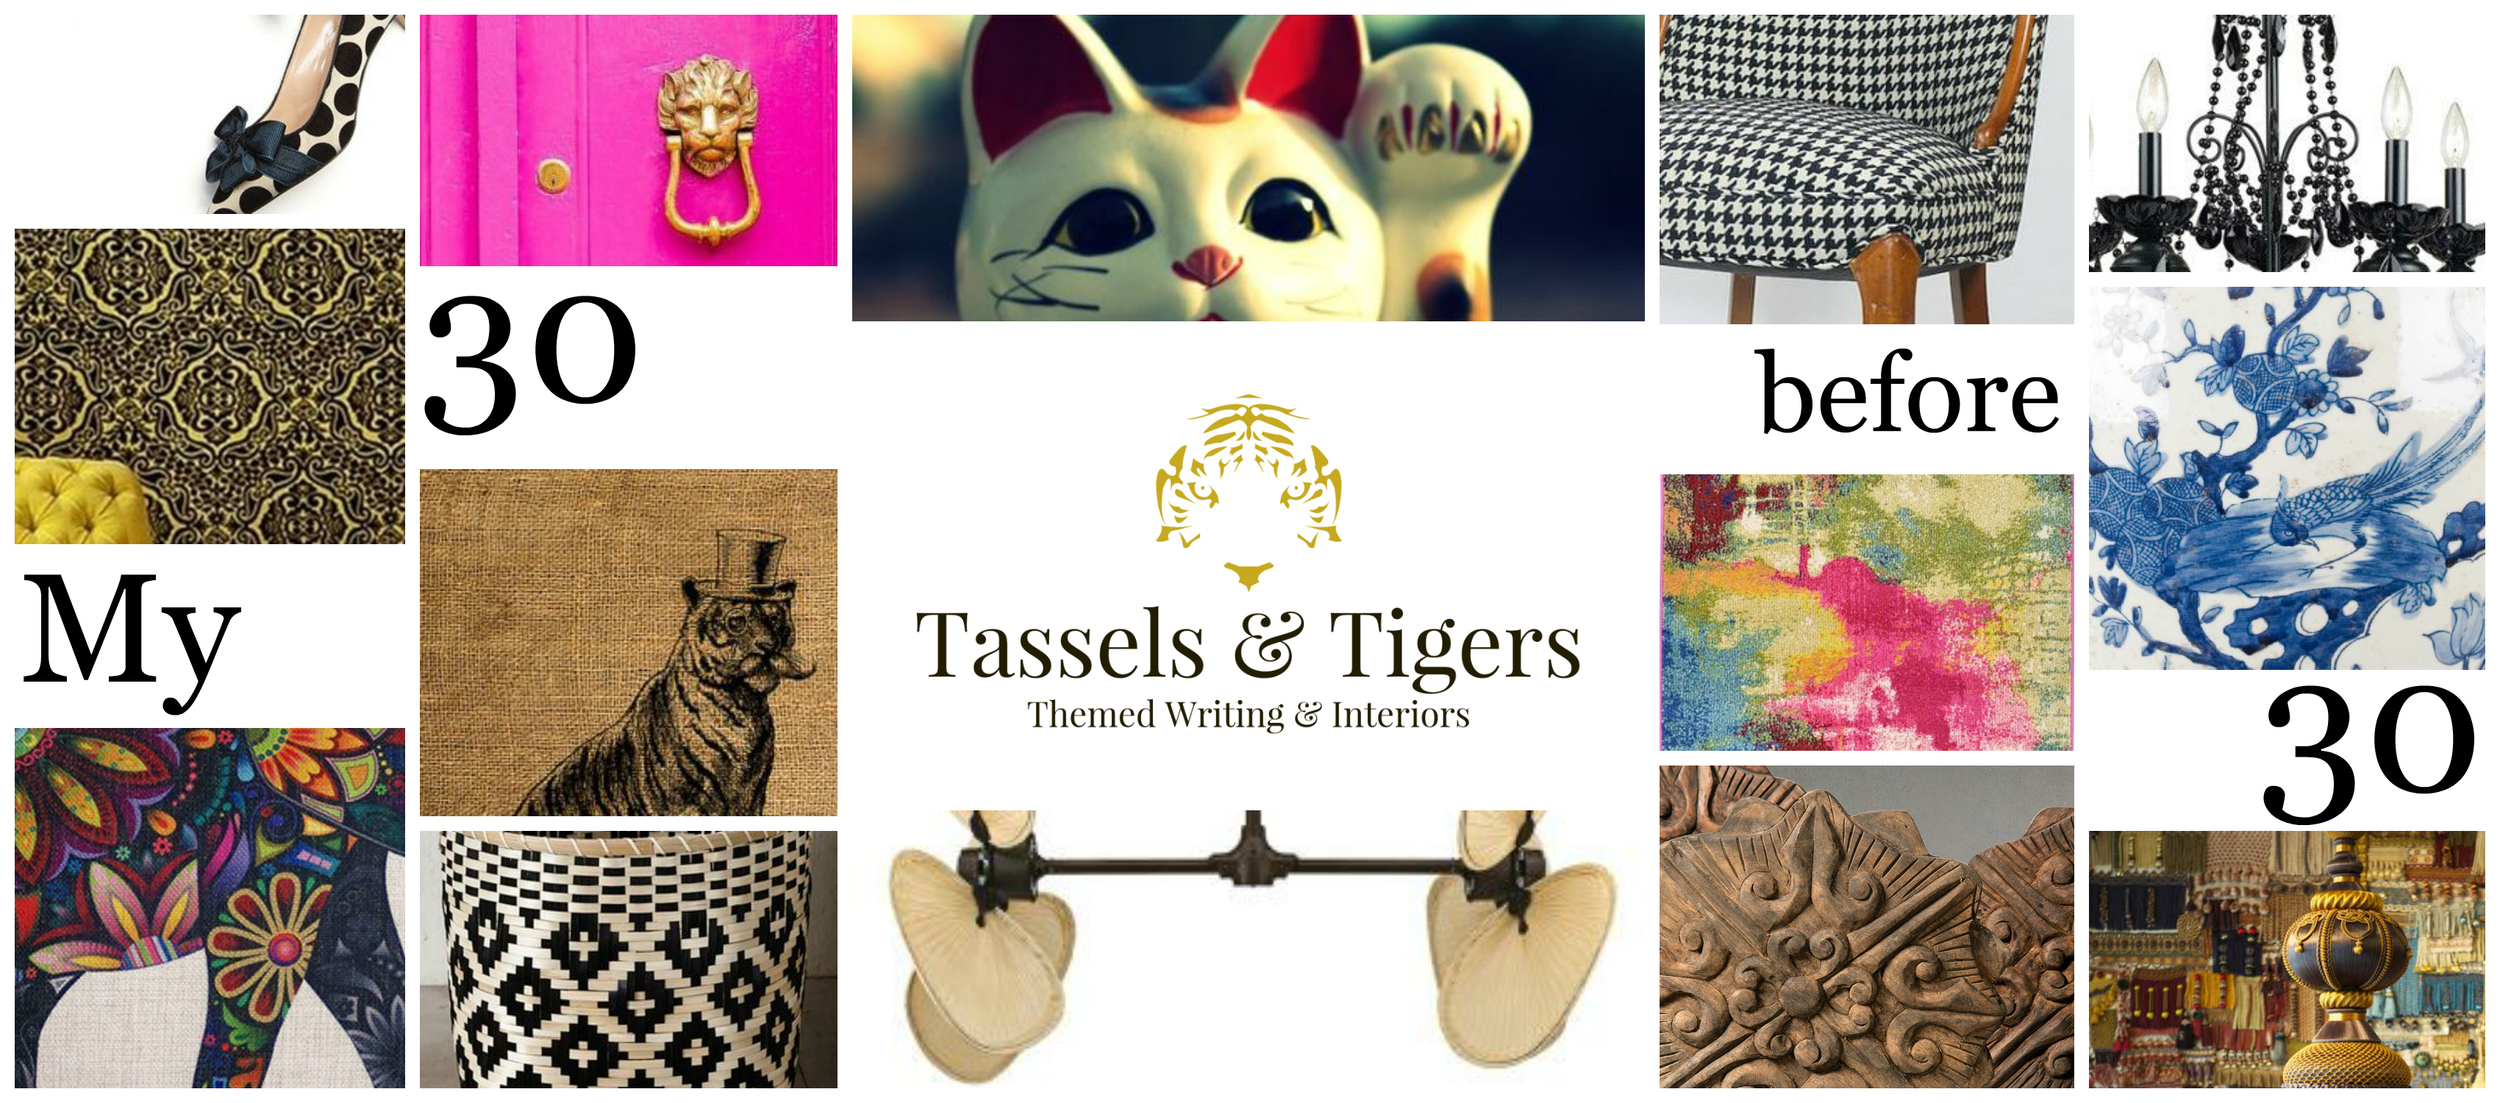 The 30 favourite decor items on my interior design list before my birthday. Tassels and Tigers